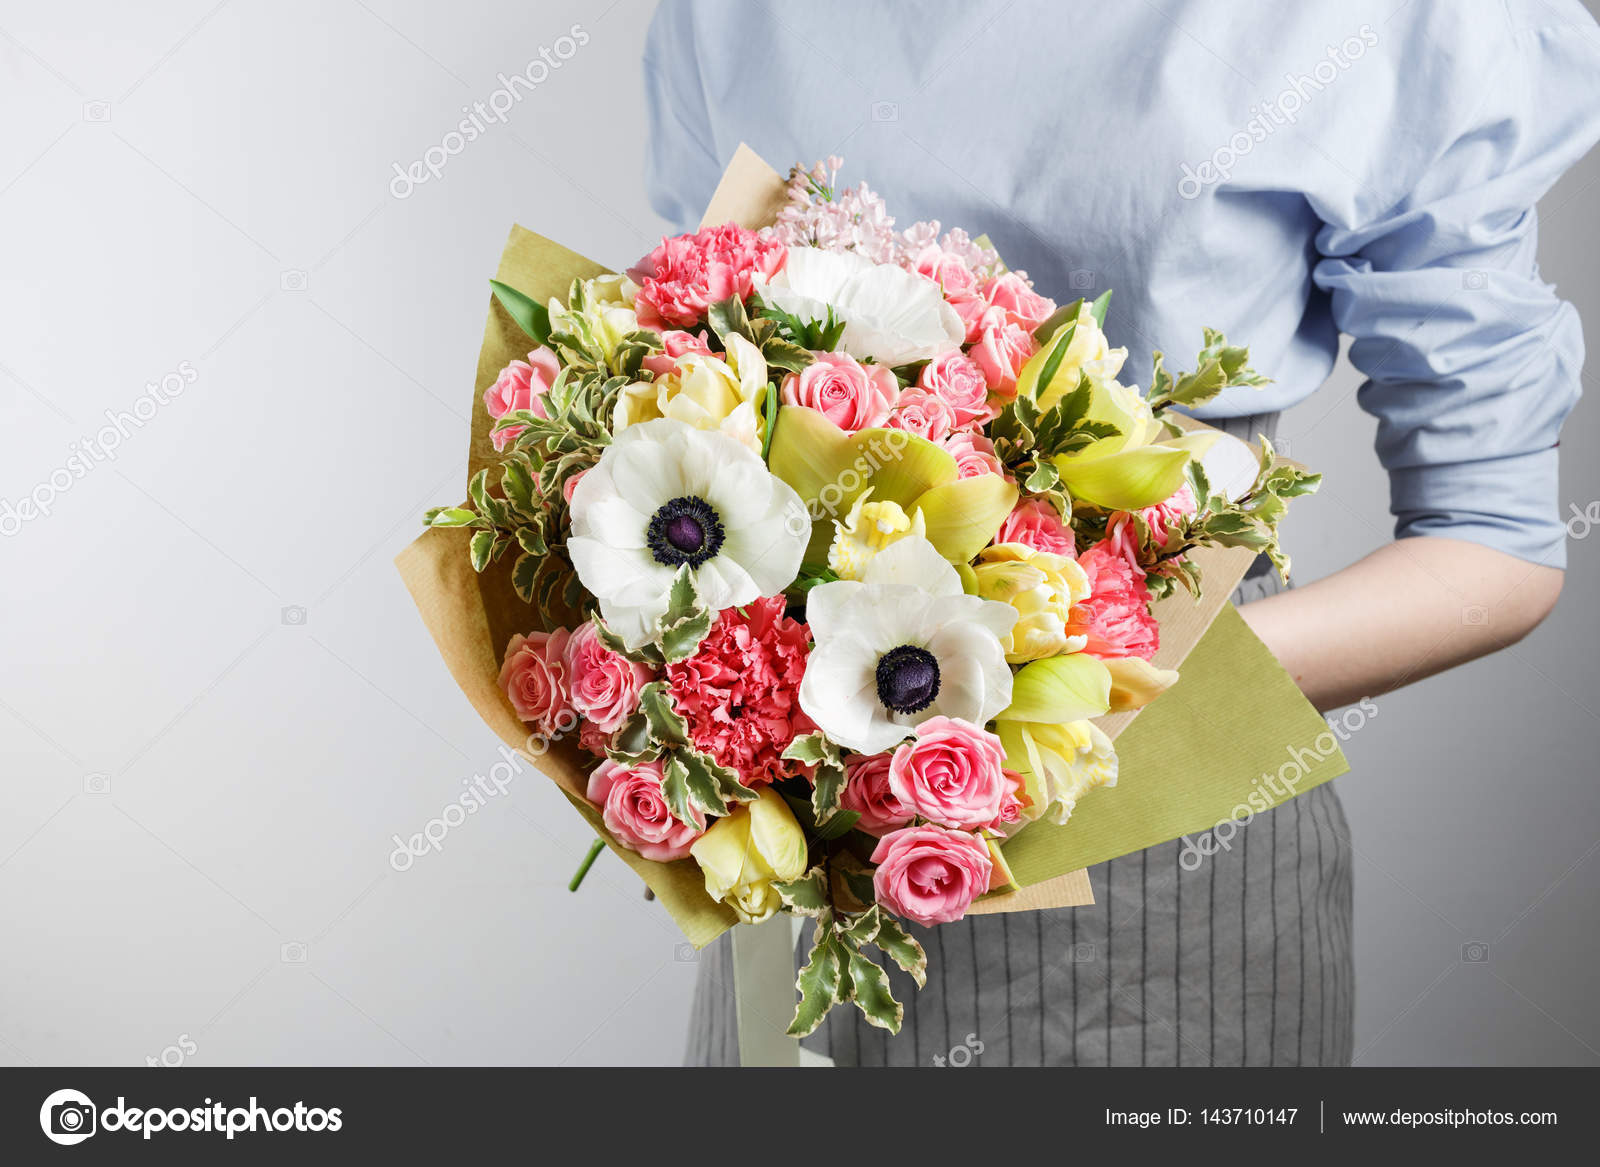 Elegant bouquet of carnation orchid roses anemone in hand a cute elegant bouquet of carnation orchid roses anemone in hand a cute soft bouquet of exotic flowers photo by malkovkosta izmirmasajfo